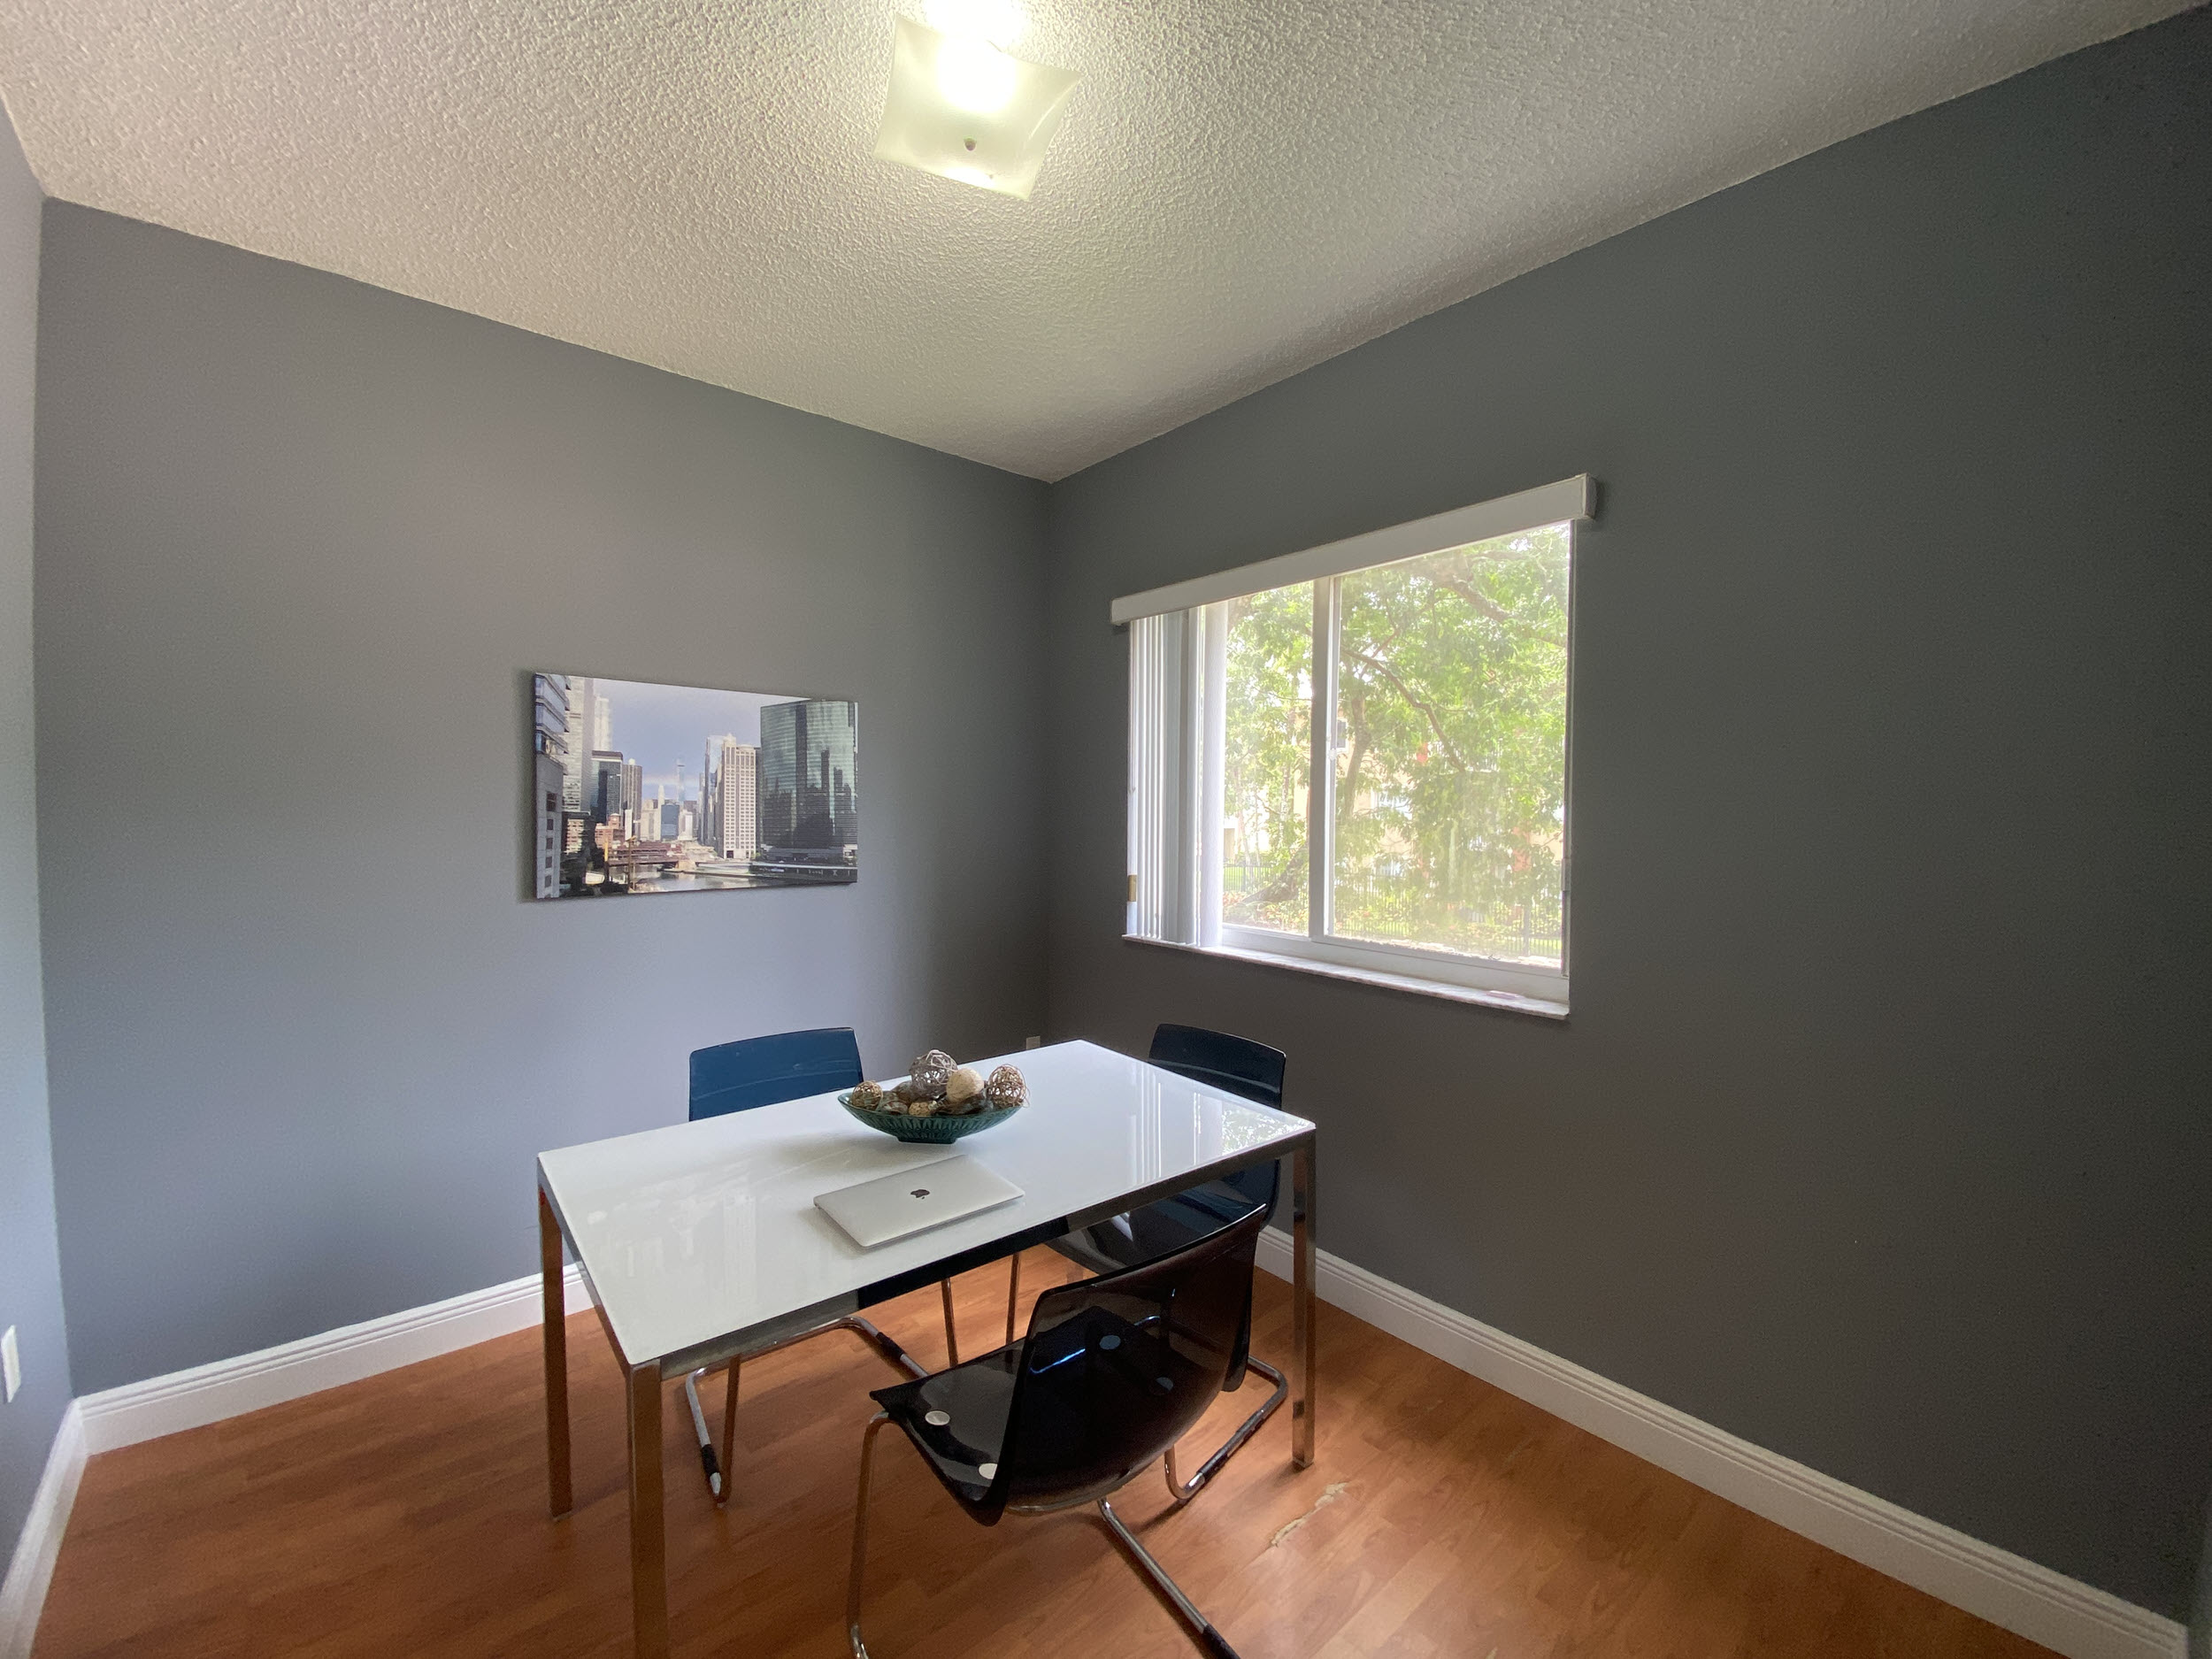 dining room area with view of pool in university parc residence condos unit 220